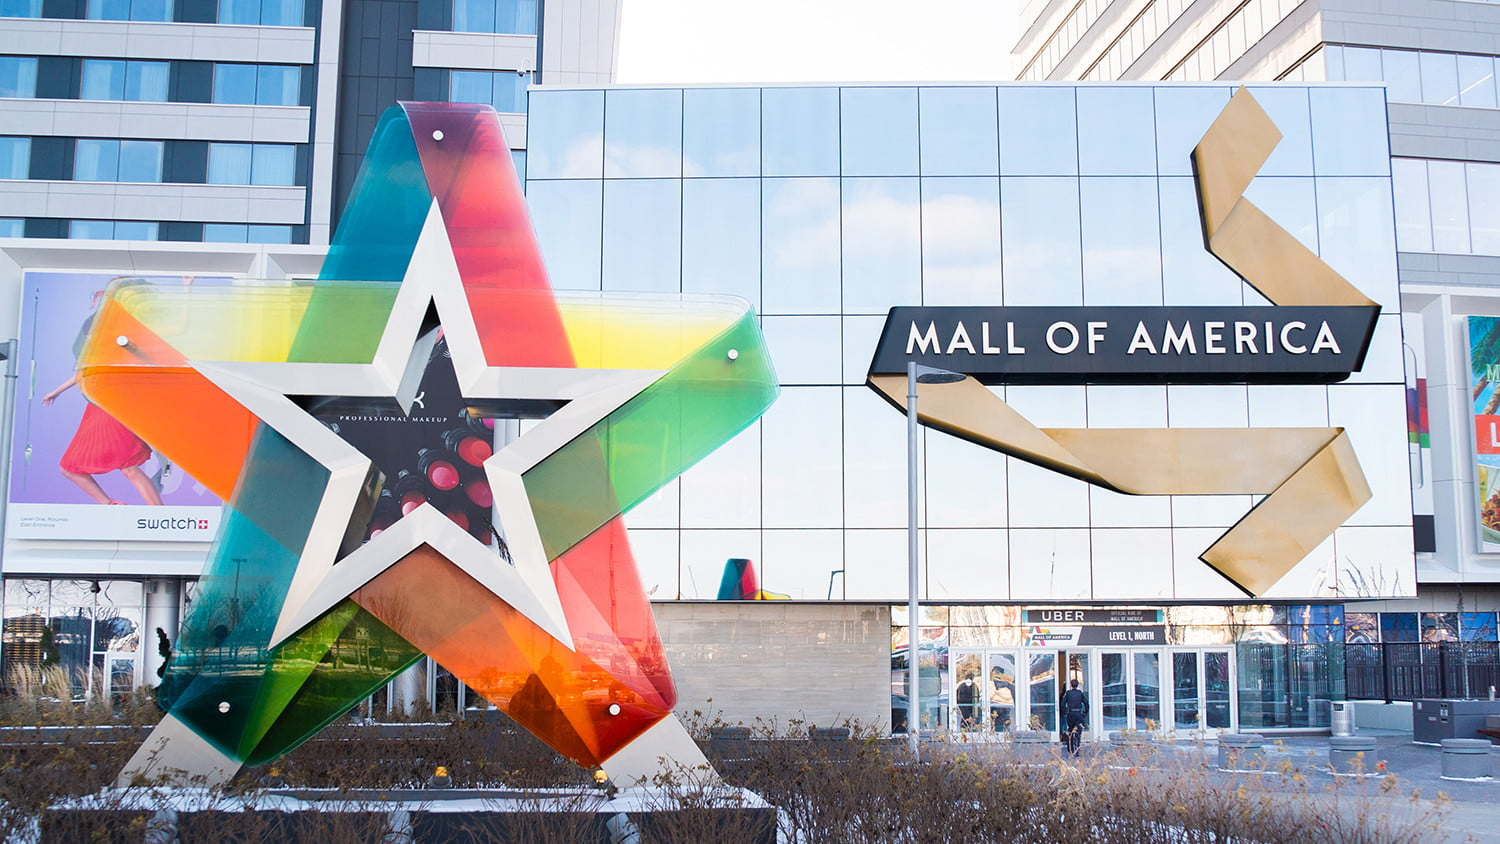 With Bluetooth, Beacons, and RFID Bands, the Mall of America